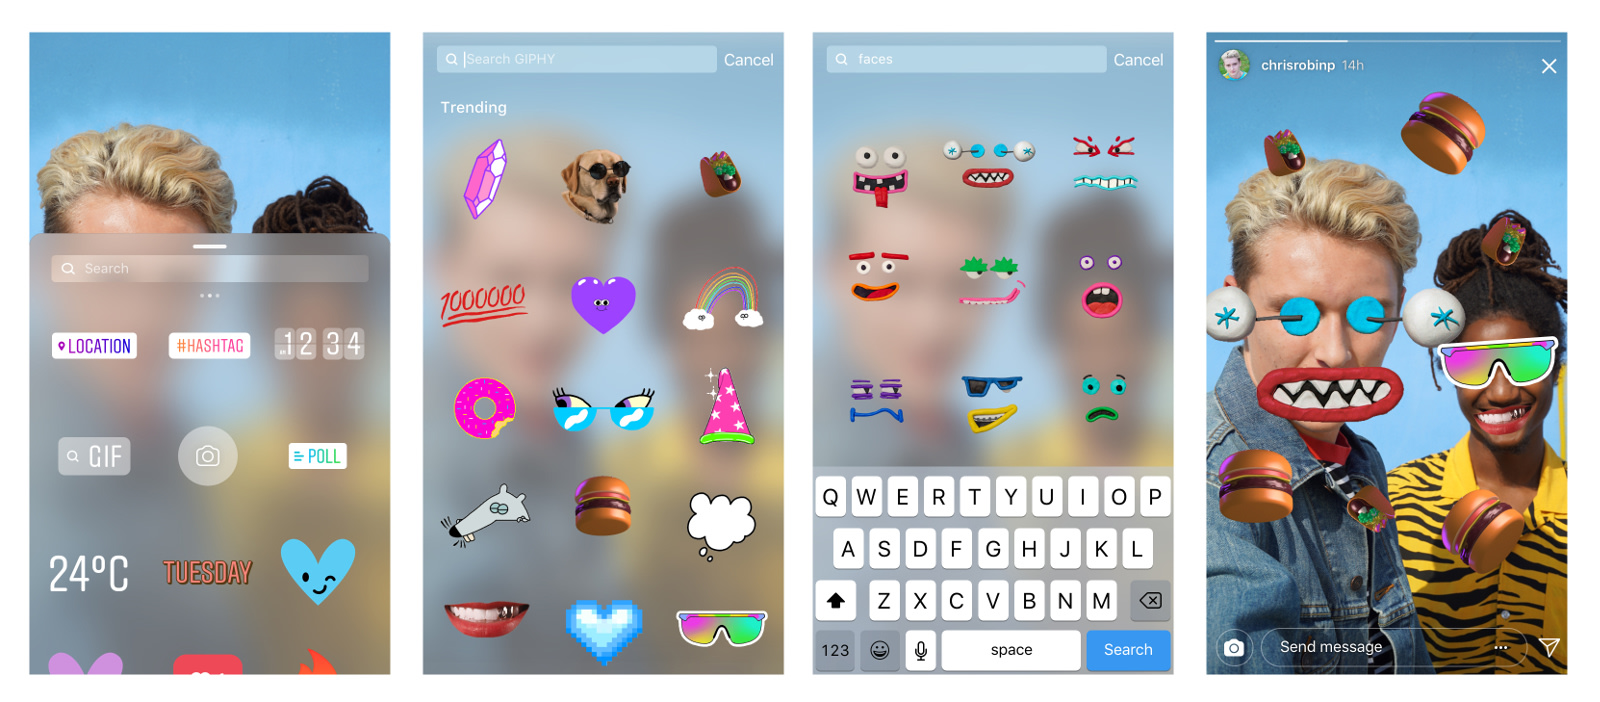 Instagram stories harness the power of giphy for animated stickers instagram ccuart Images